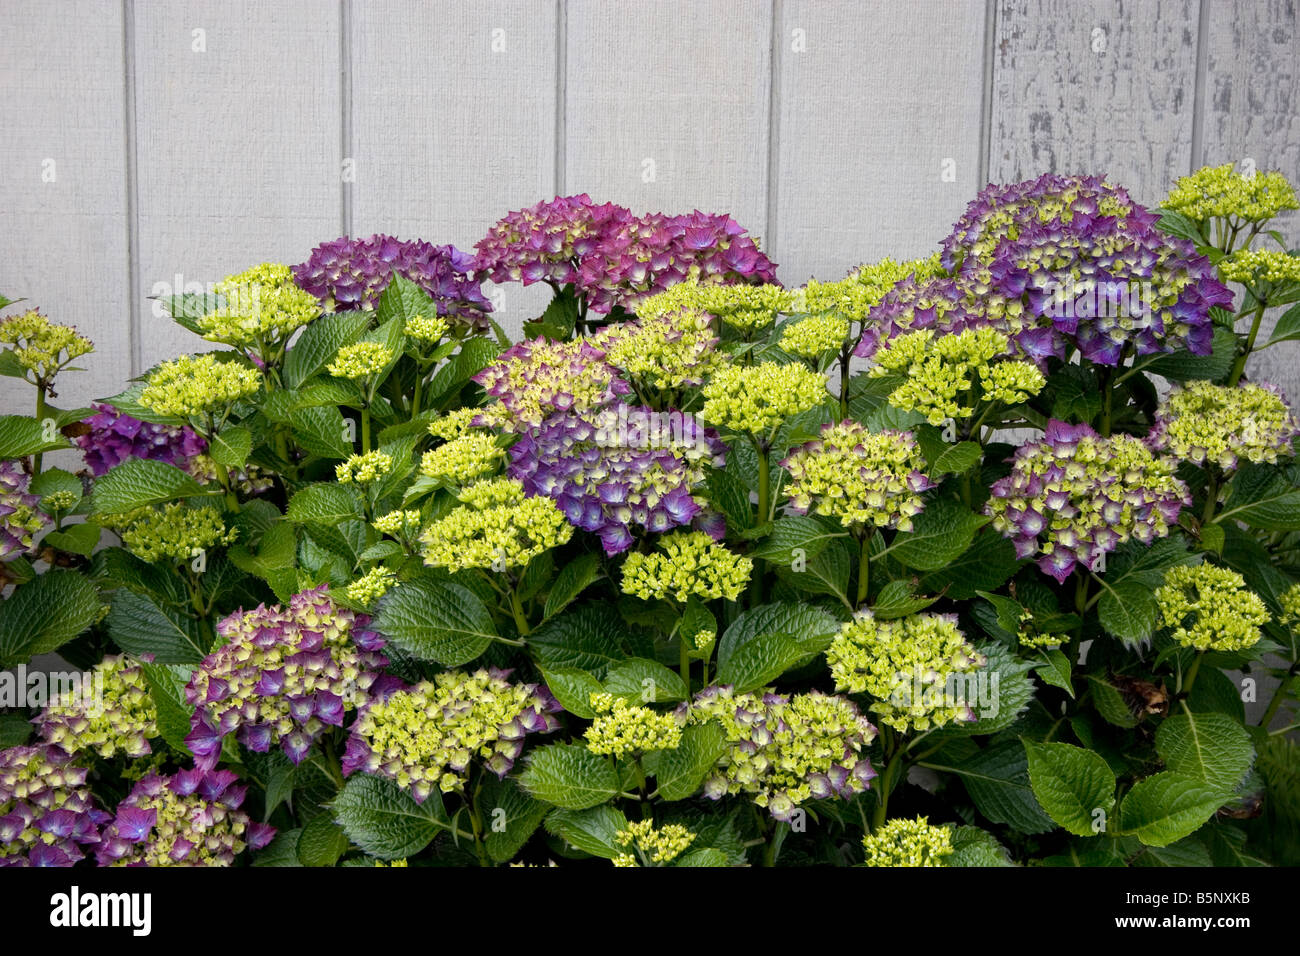 Hydrangea bush growing against white wall - Stock Image